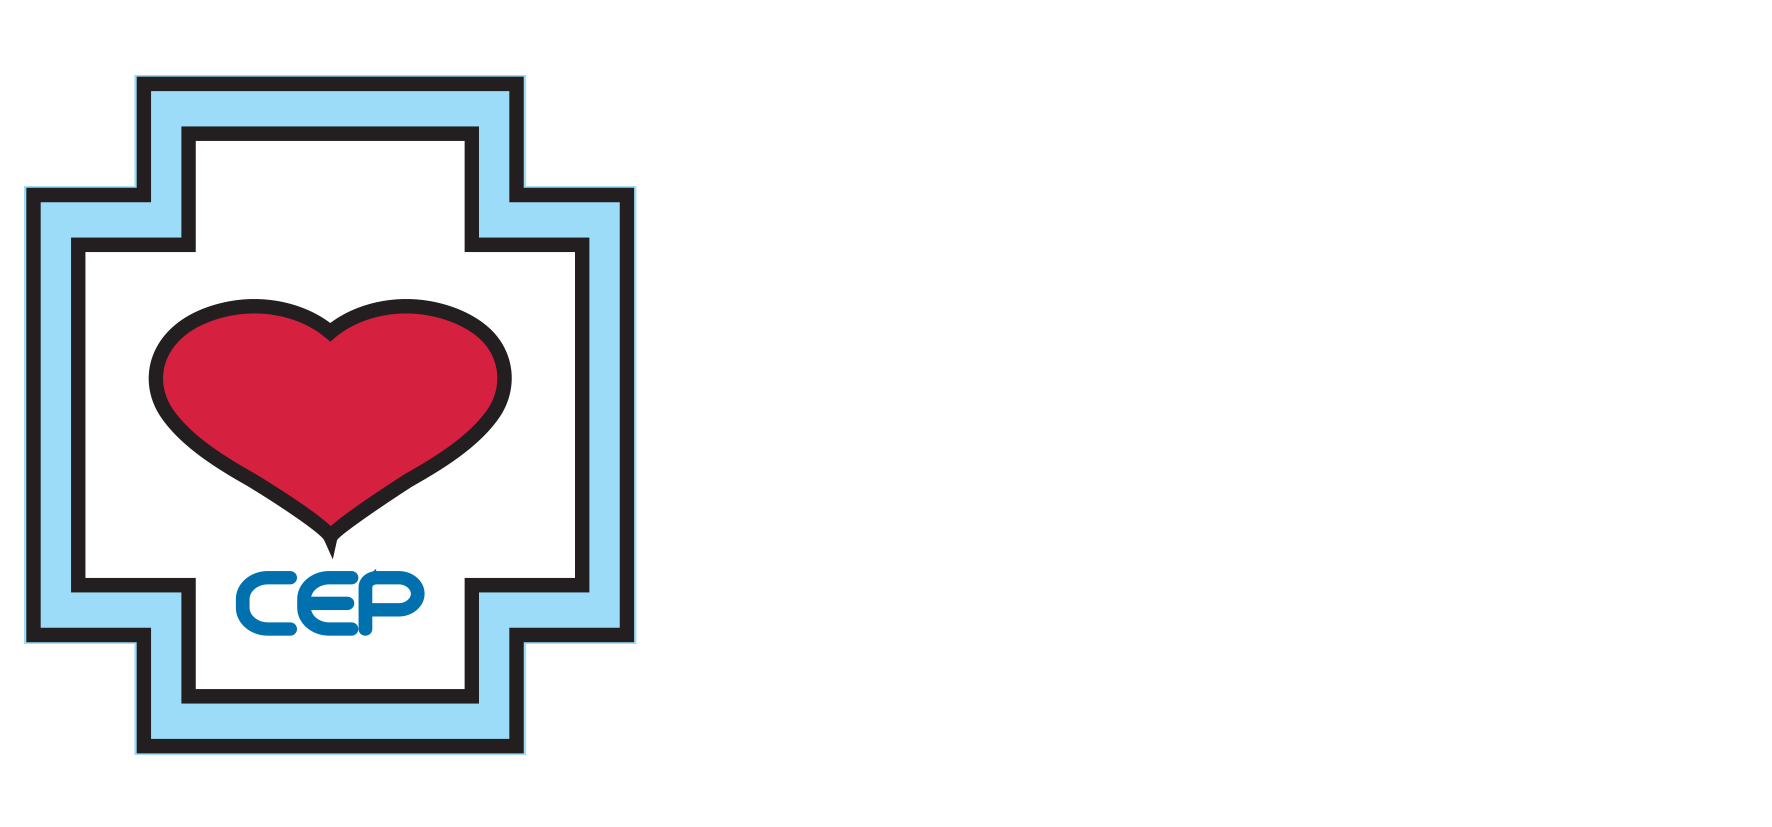 Couple Empowerment Programme